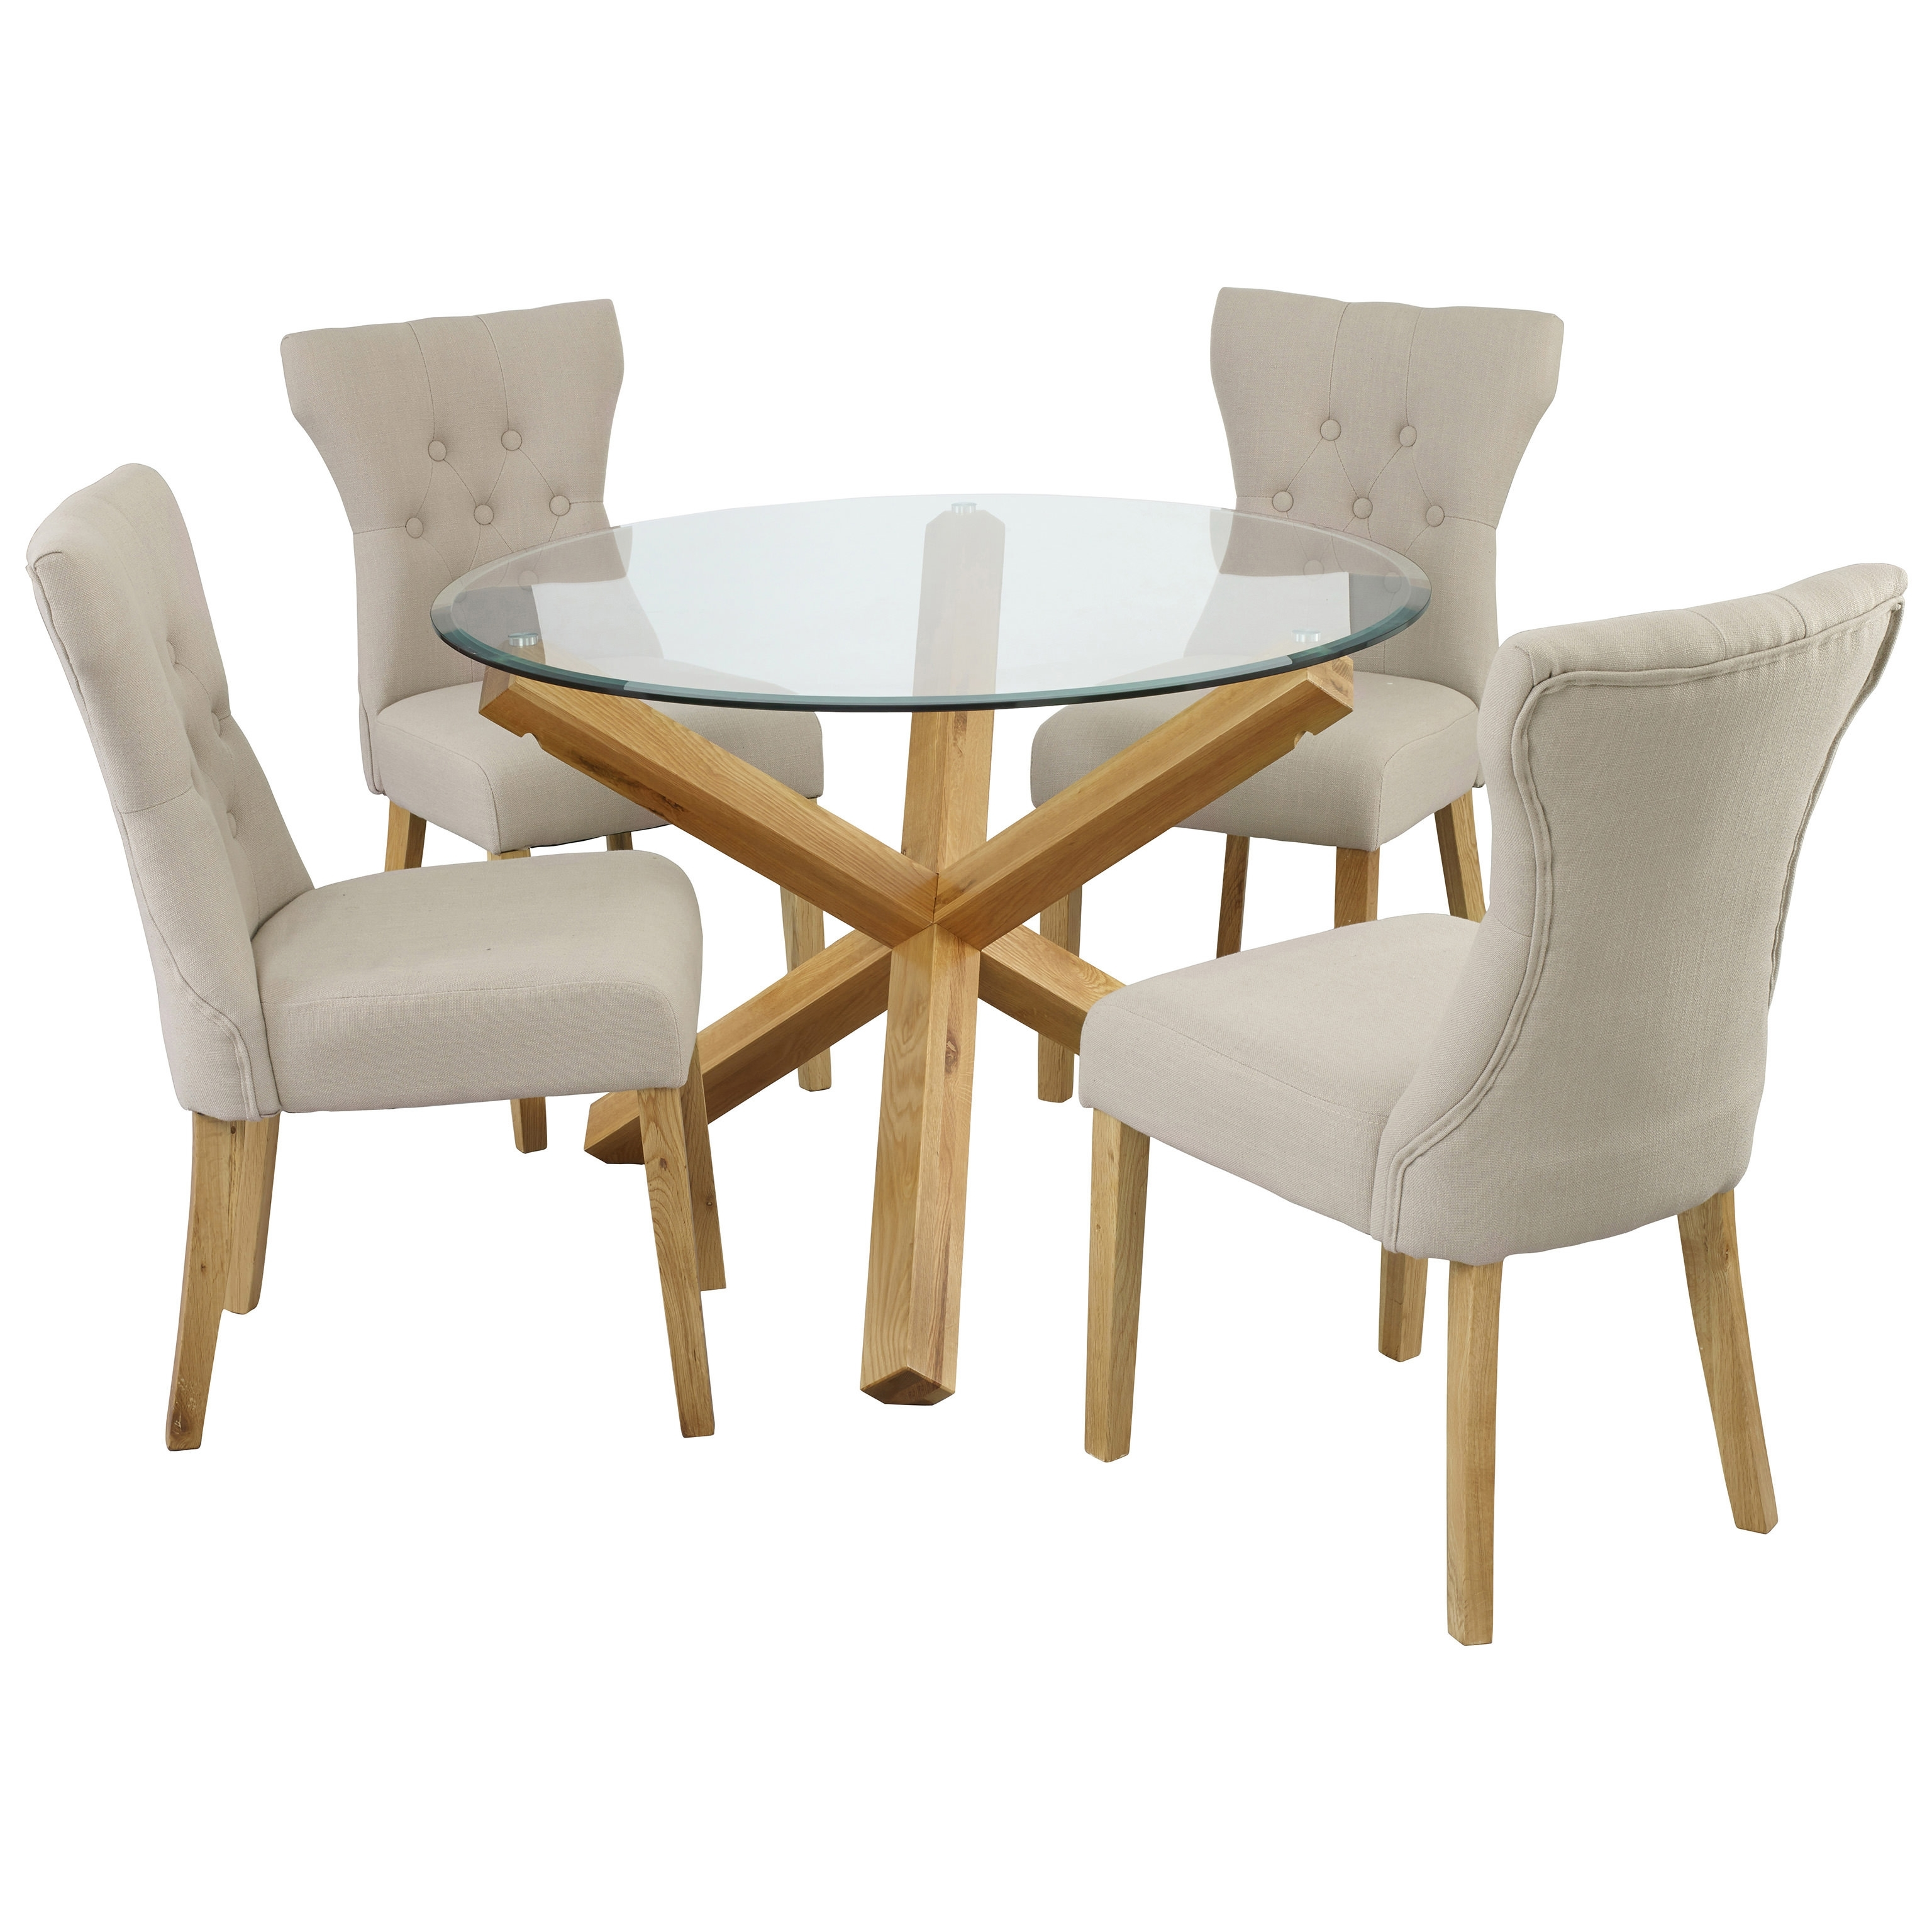 Widely Used Oak & Glass Round Dining Table And Chair Set With 4 Fabric Seats Intended For Oak Dining Tables And Fabric Chairs (View 3 of 25)